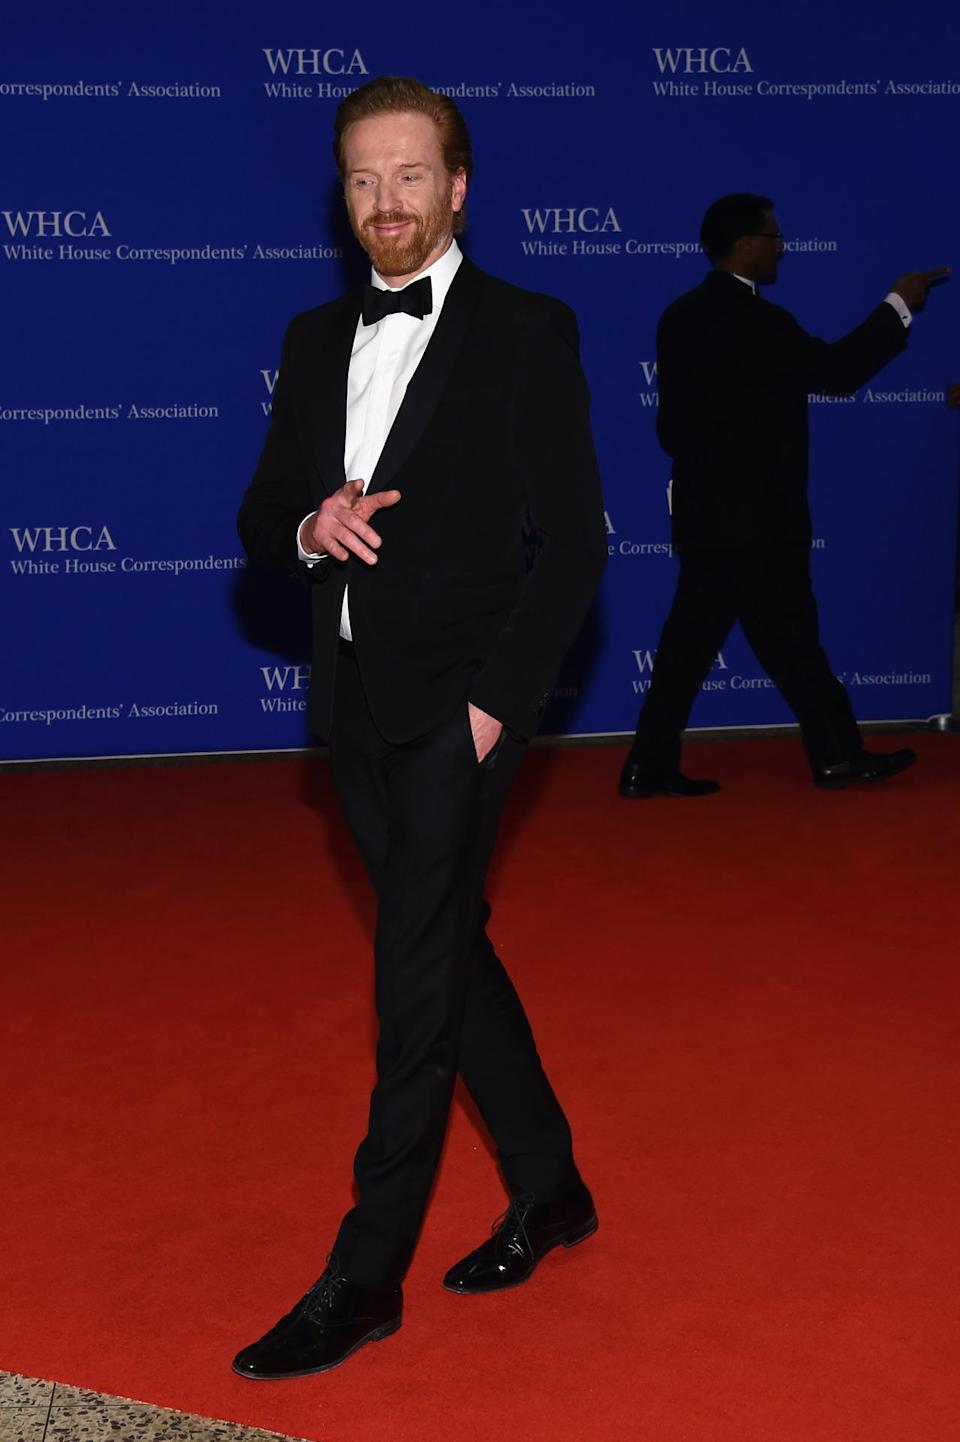 <p>Actor Damian Lewis attends the 102nd White House Correspondents' Dinner, April 30. <i>(Photo: Larry Busacca/Getty Images)</i></p>